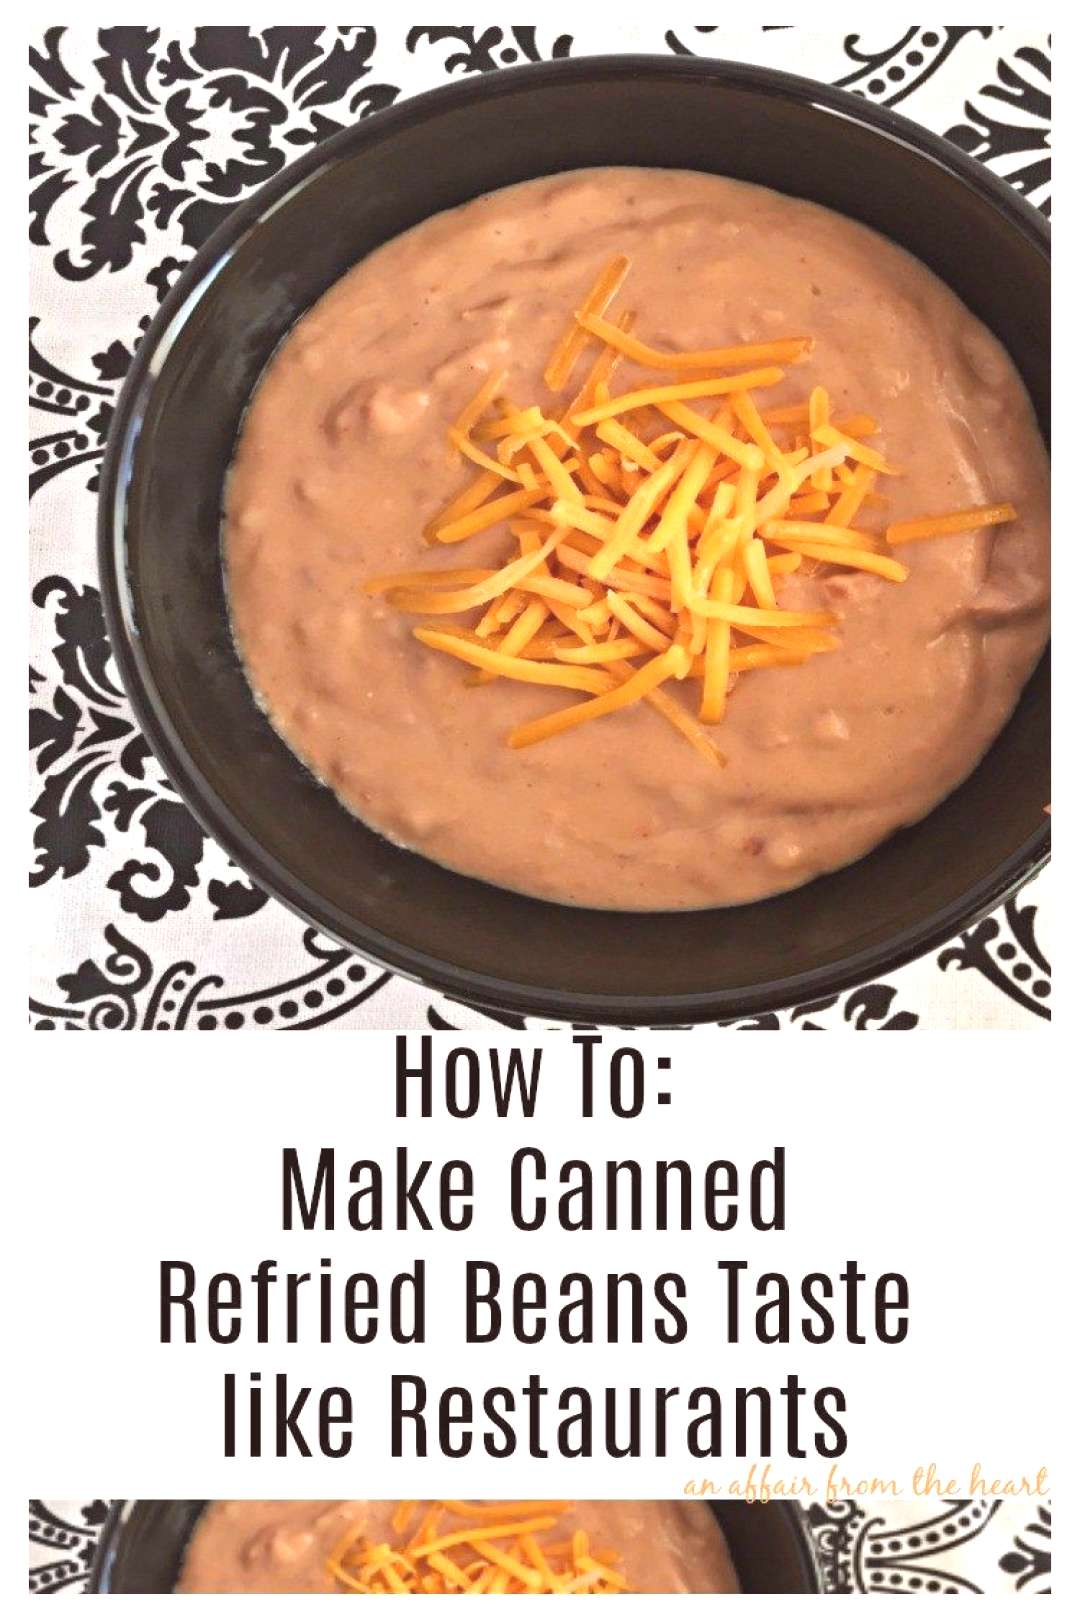 How To: Make Canned Refried Beans Taste like a Restaurant's -  How To Make Canned Refried Beans Tas